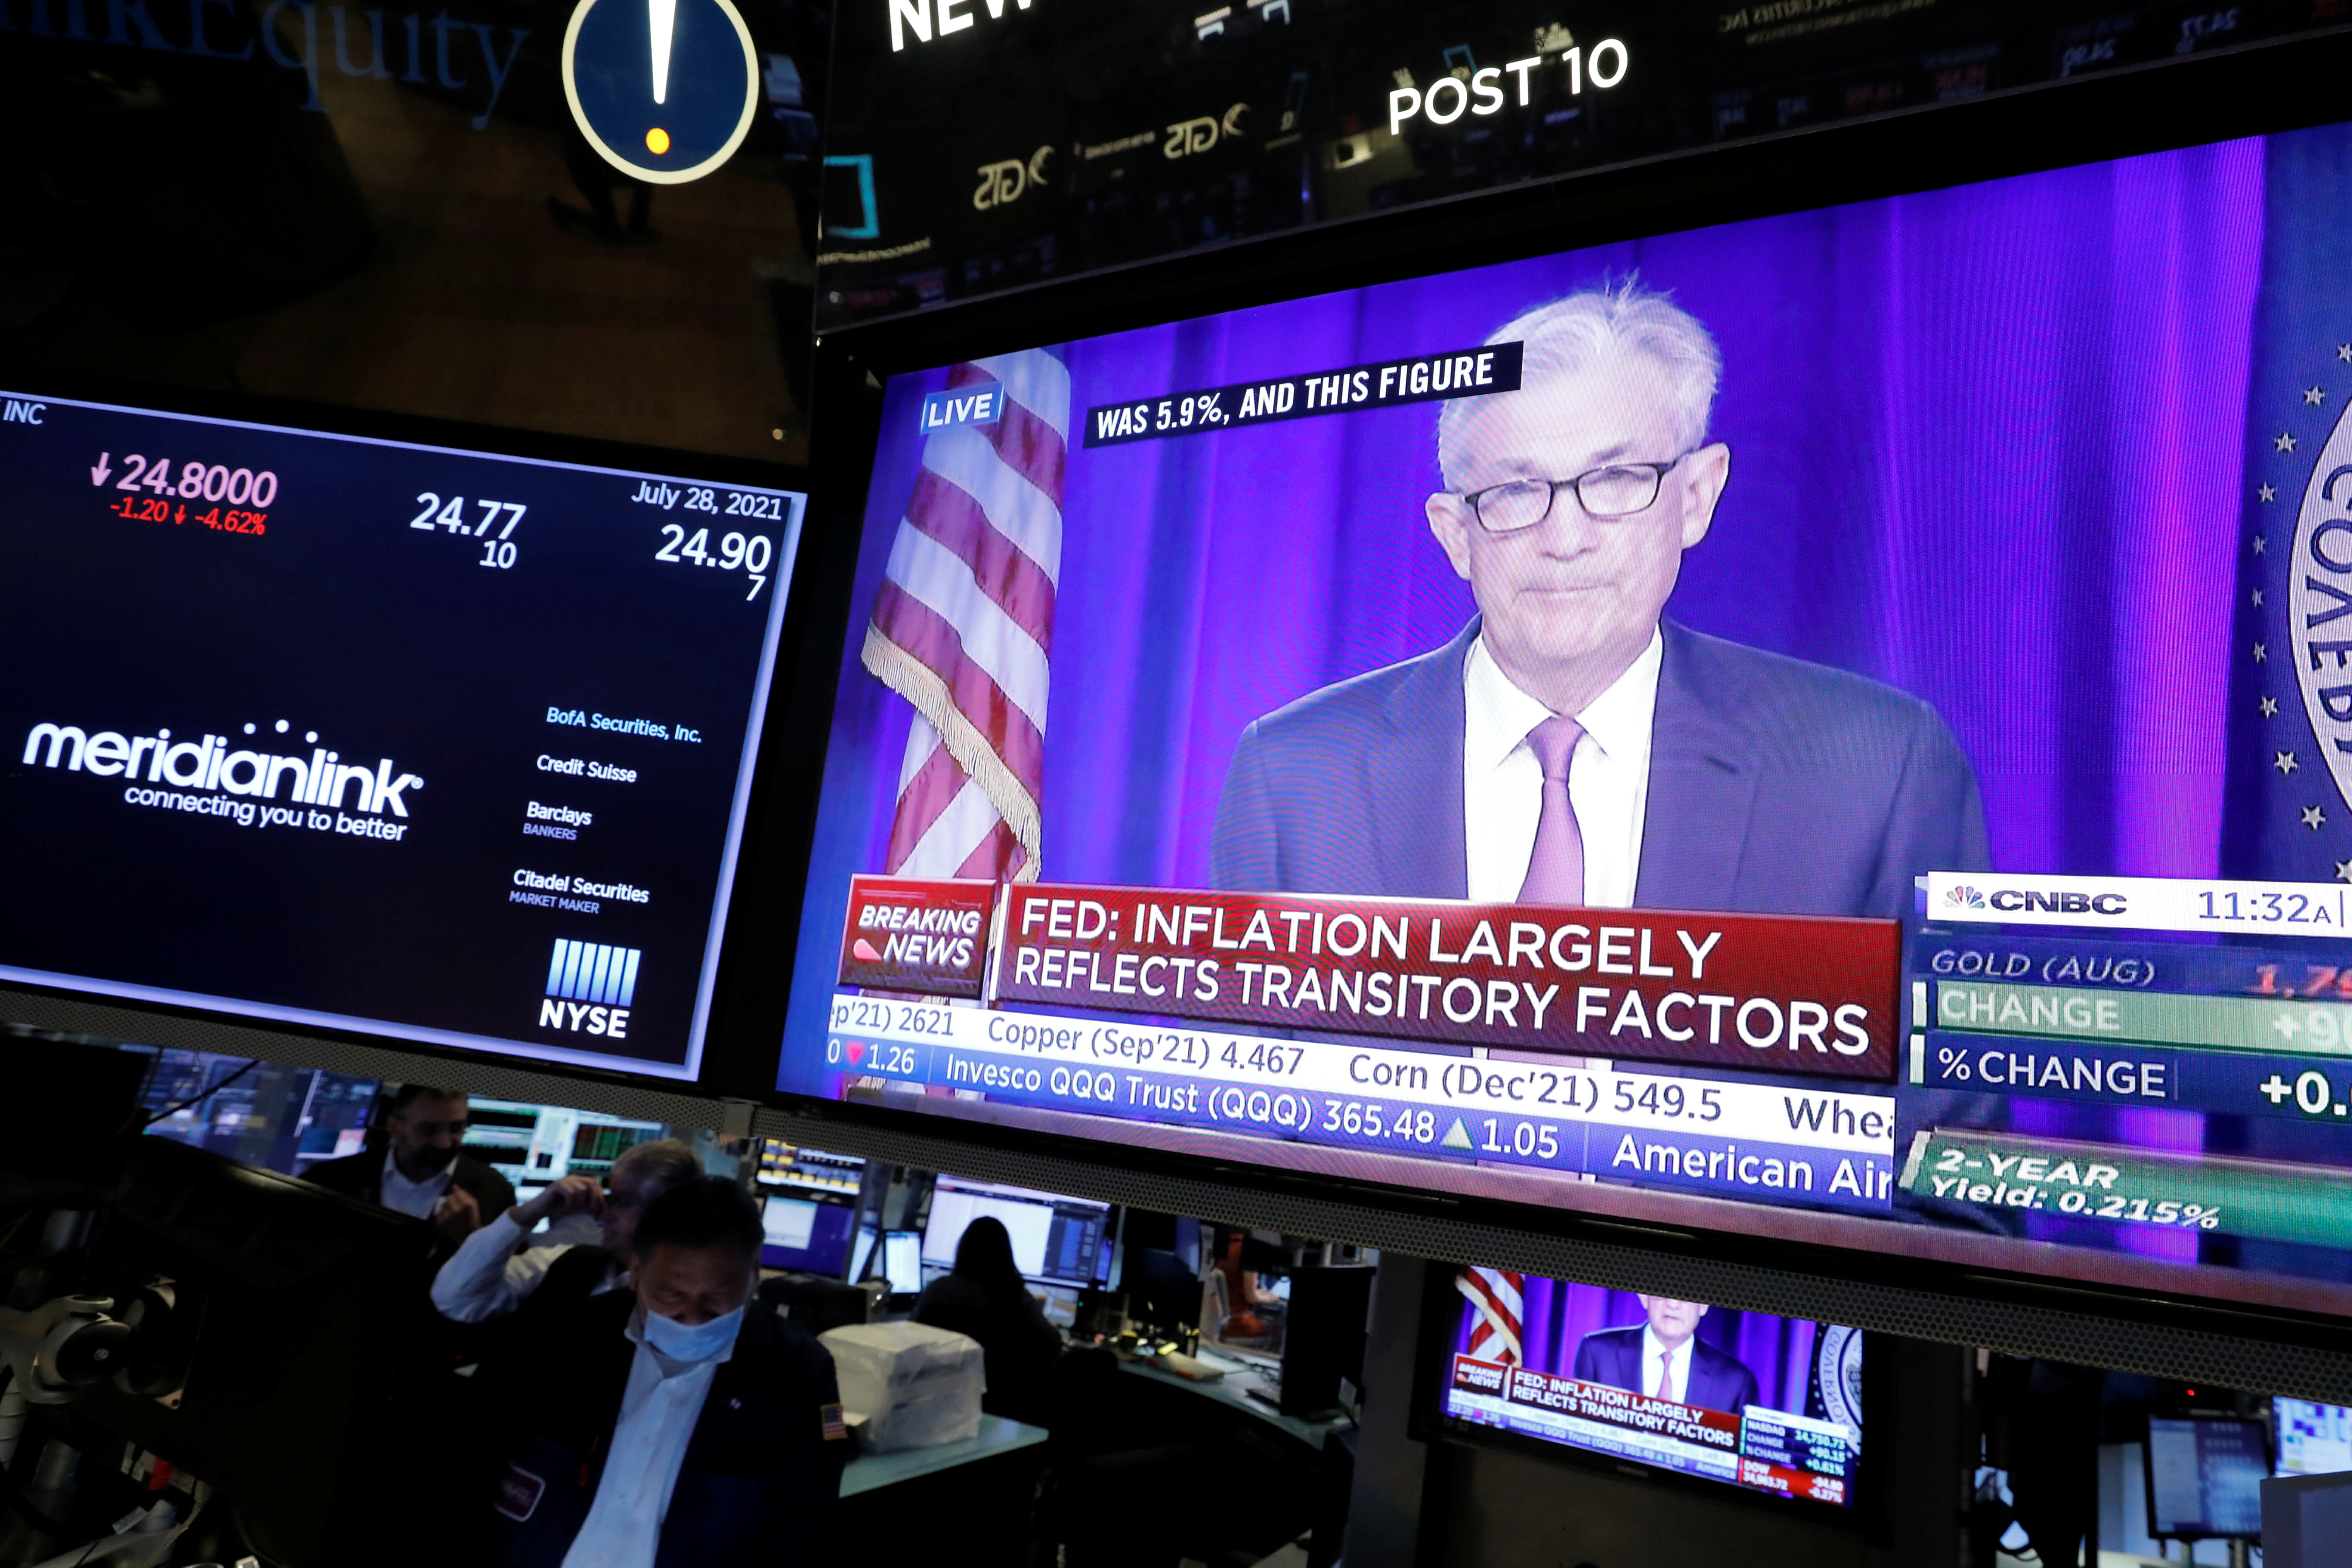 A screen displays a statement by Federal Reserve Chair Jerome Powell following the U.S. Federal Reserve's announcement as traders work on the trading floor at New York Stock Exchange (NYSE) in New York City, New York U.S., July 28, 2021. REUTERS/Andrew Kelly